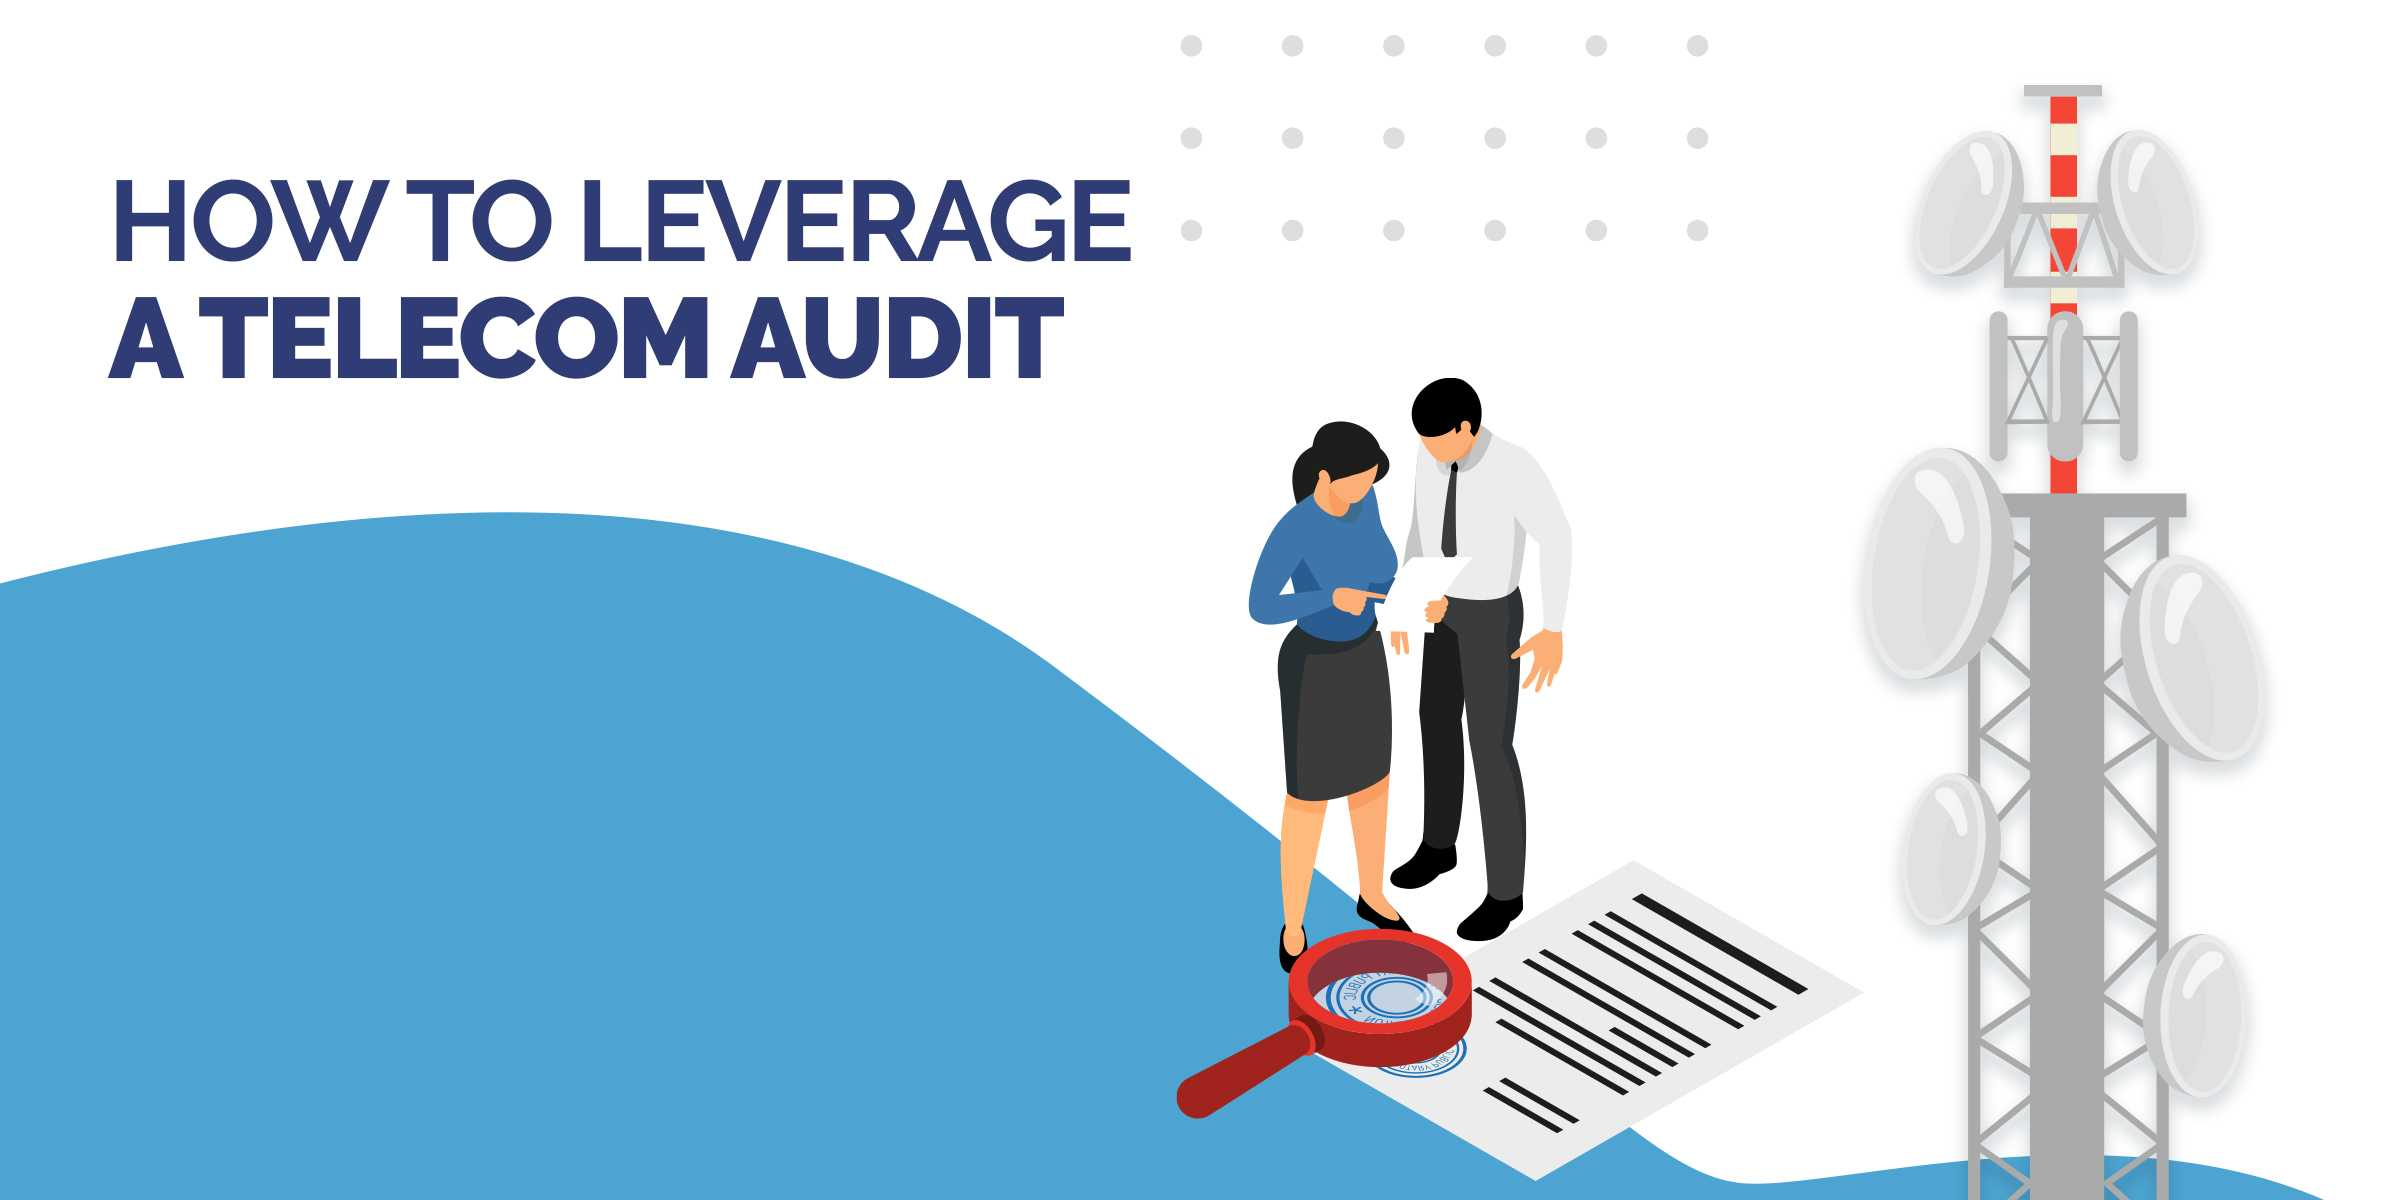 How to Leverage a Telecom Audit